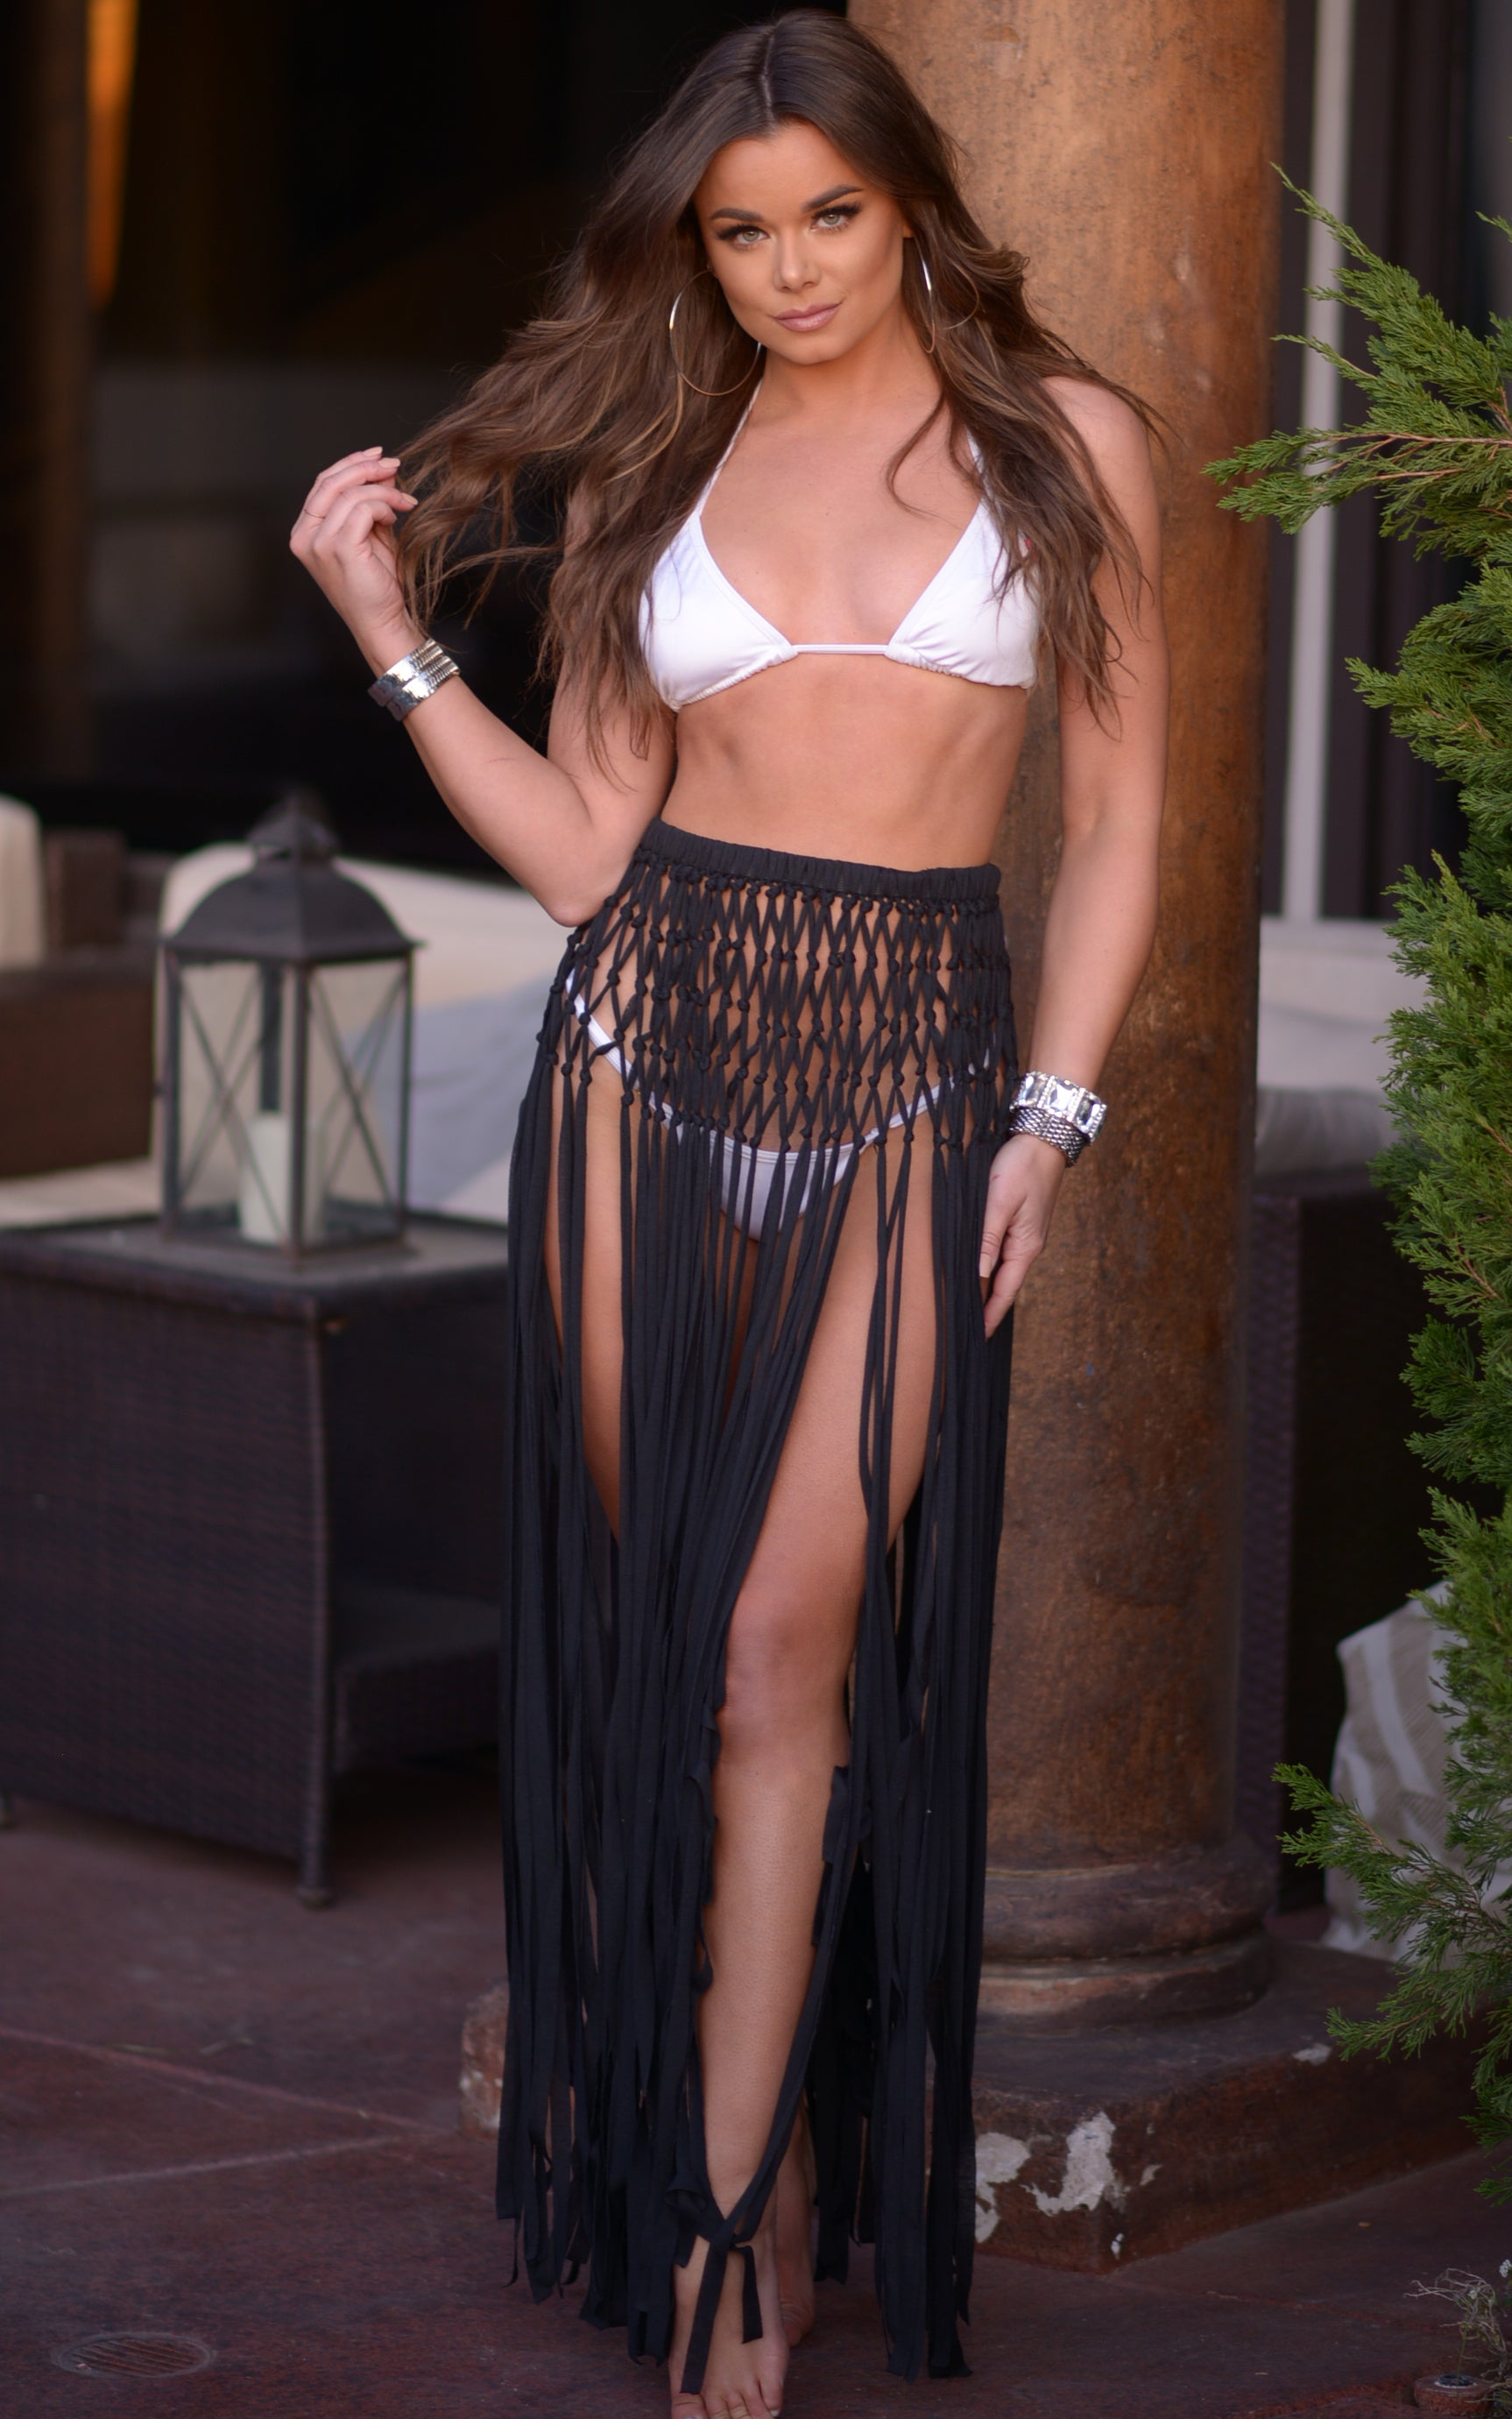 Bexley: Crochet Fringe Skirt Coverup in Black - Chynna Dolls Swimwear